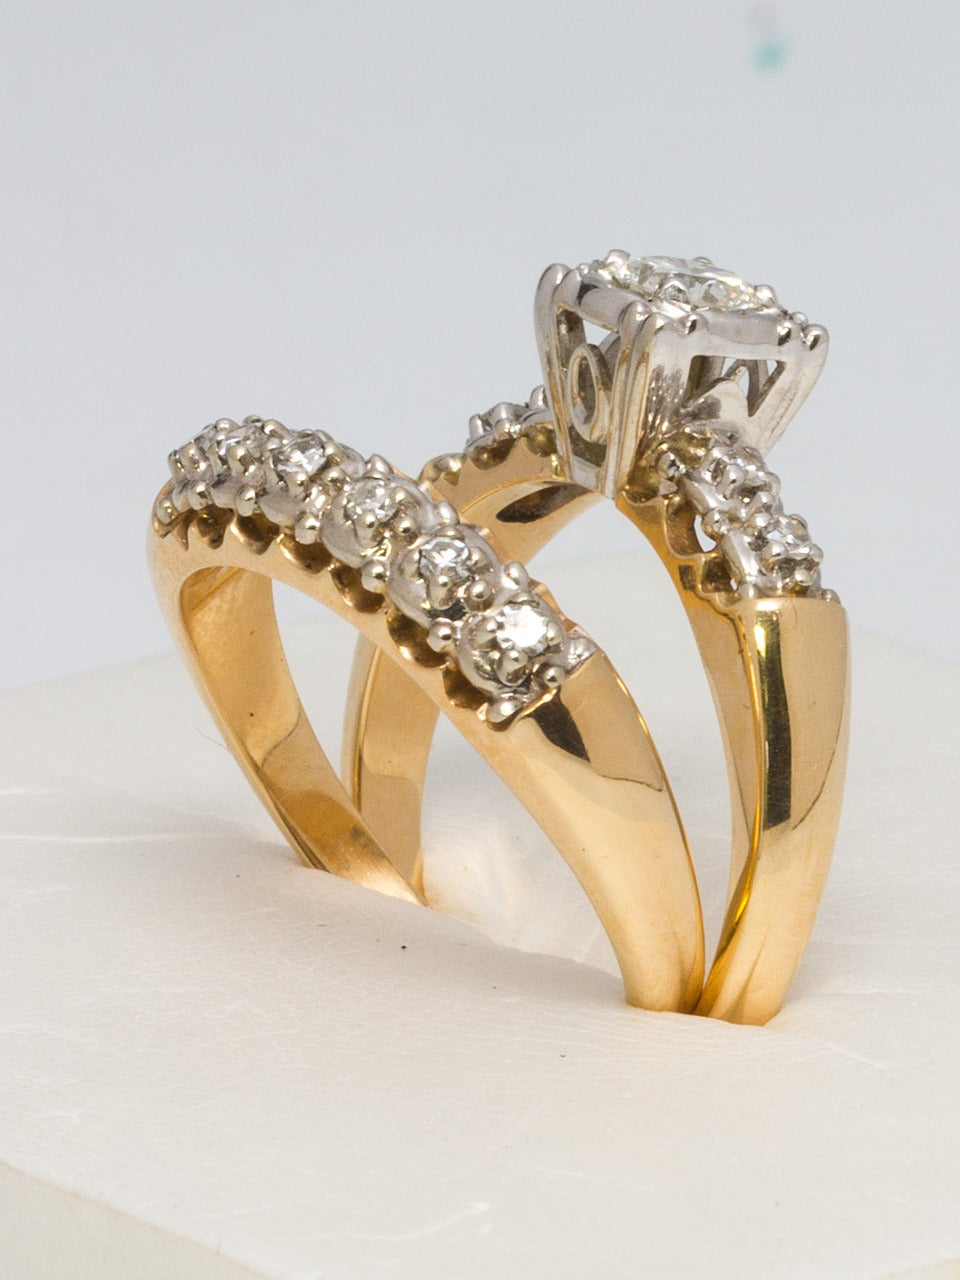 1950s yellow gold and diamond wedding ring set 3 - Engagement Wedding Ring Set